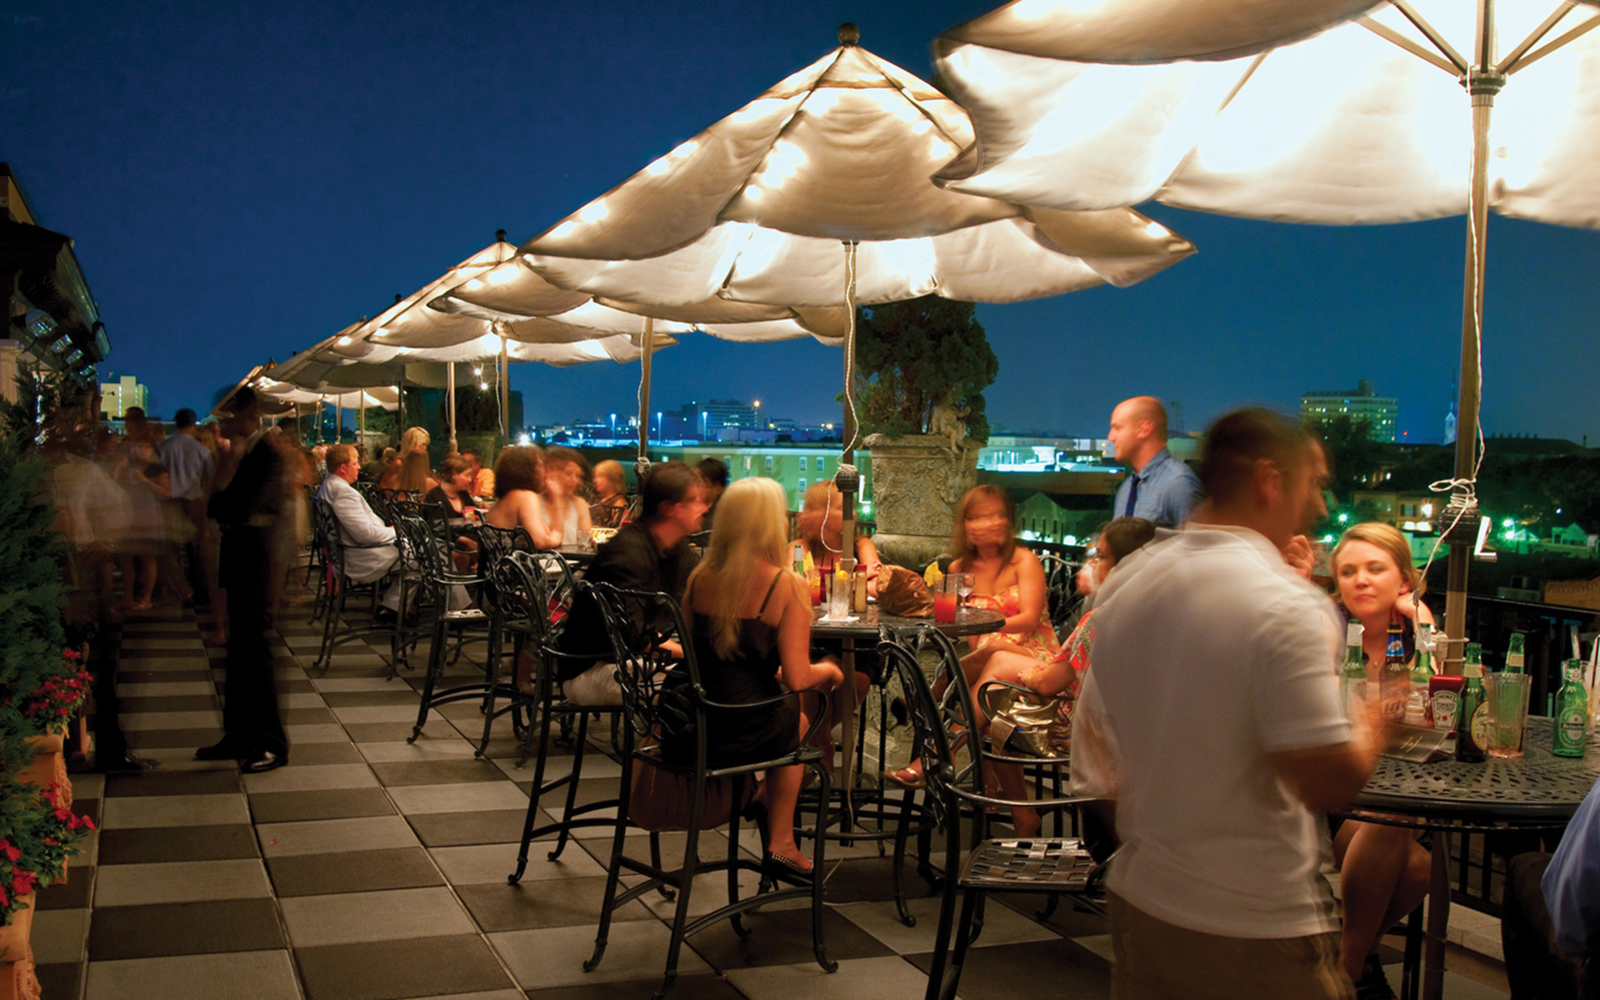 wb hotels for nightlife - Eclectic Hotel 2015